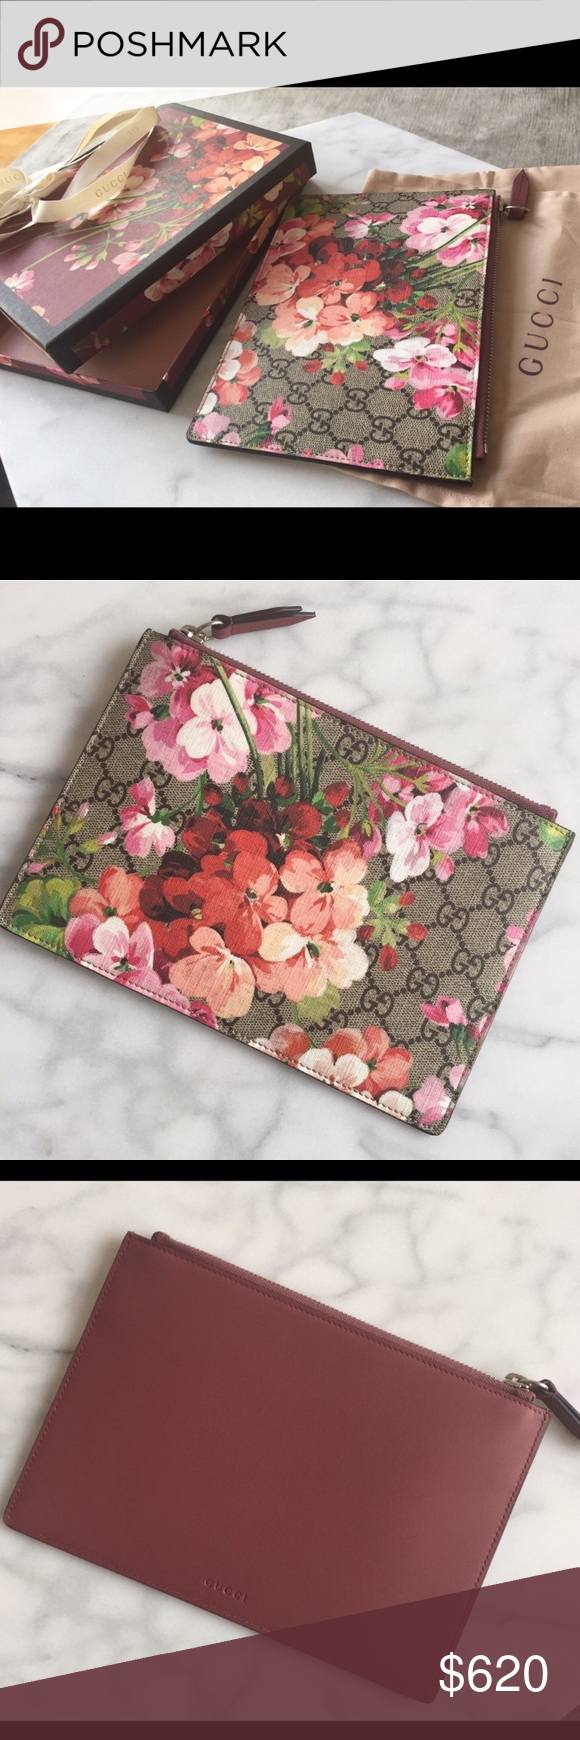 595c1faa413 Beautiful Gucci Bloom Pouch   clutch Brand new authentic and immaculate.  Absolutely beautiful case